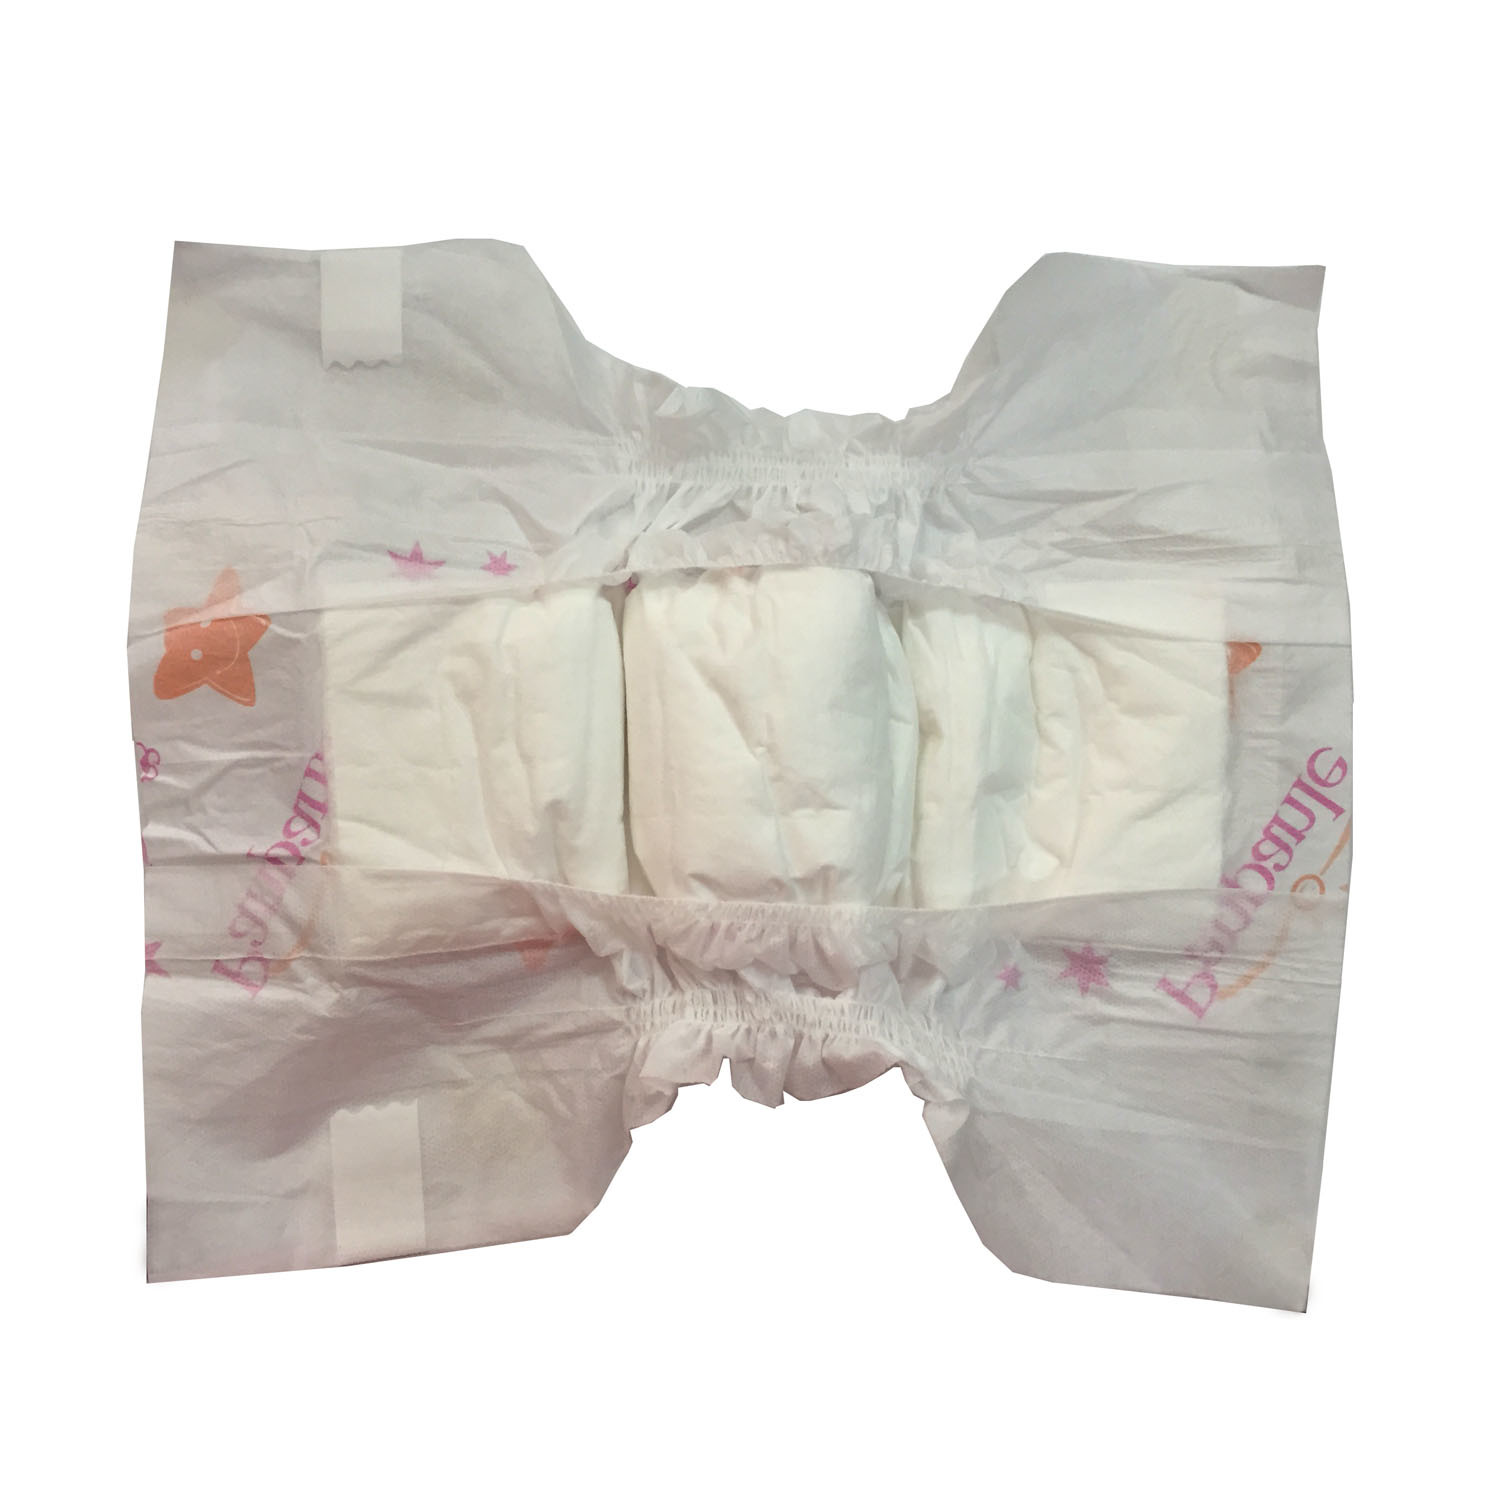 Baby Diaper with Clothlike Backsheet Printed Film Magic Tapes